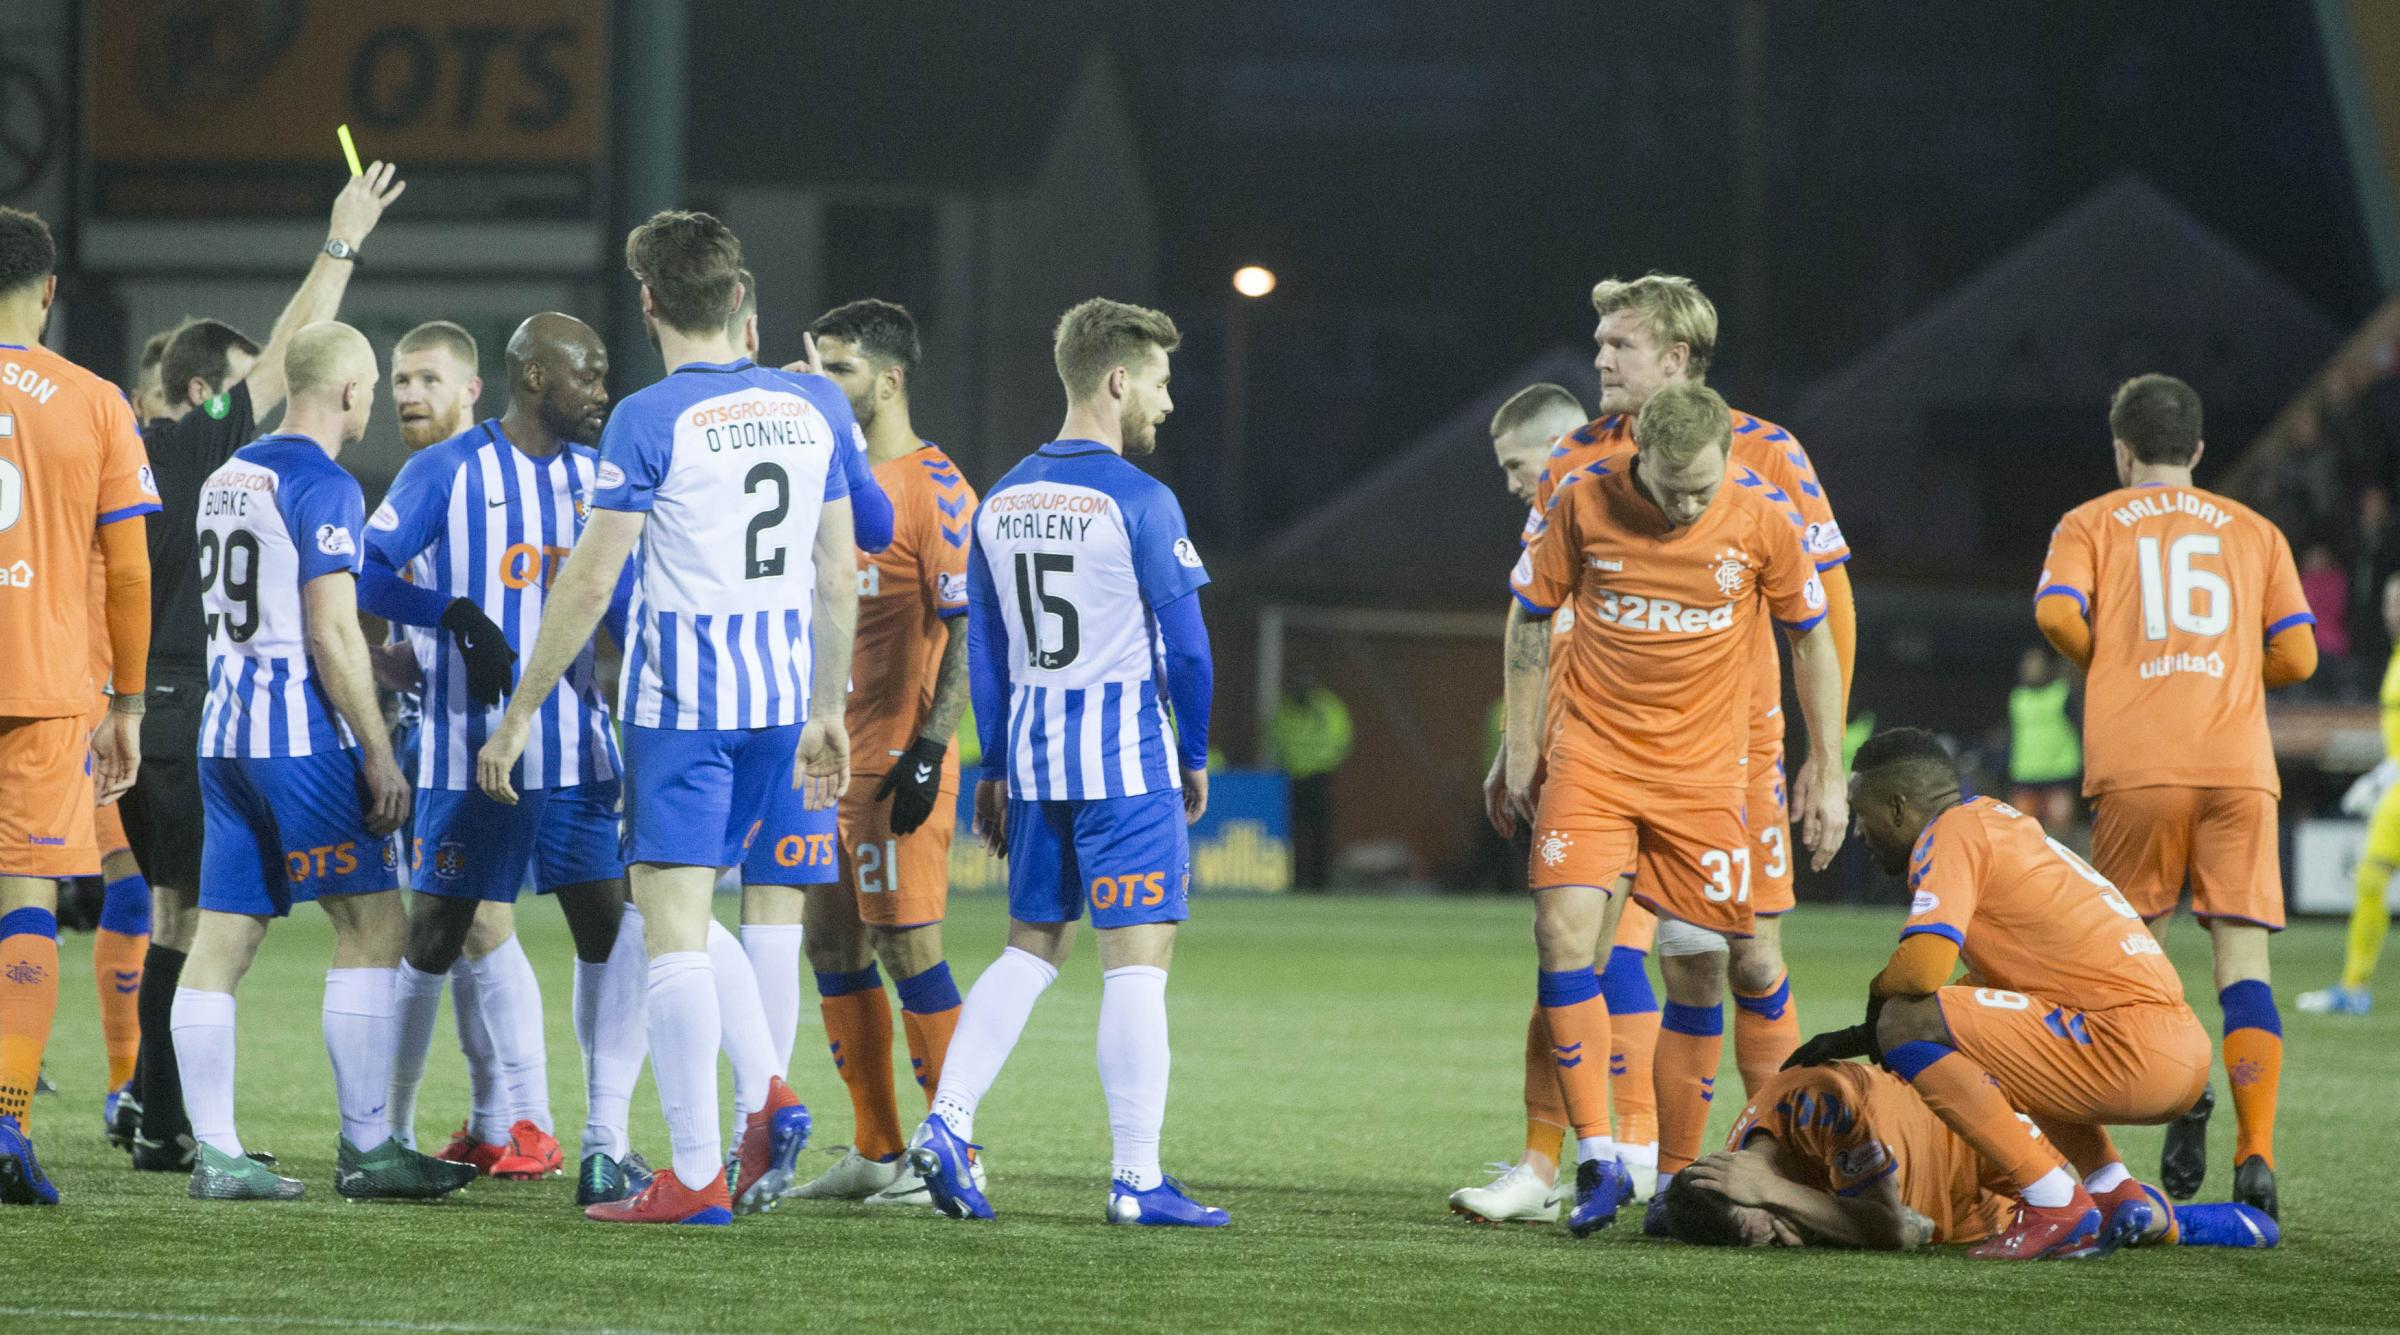 Kilmarnock'��s Alan Power clashes with Rangers' Ryan Jack in first half gets booked during the William Hill Scottish Cup, fifth round match at Rugby Park, Kilmarnock. PRESS ASSOCIATION Photo. Picture date: Saturday February 9, 2019.